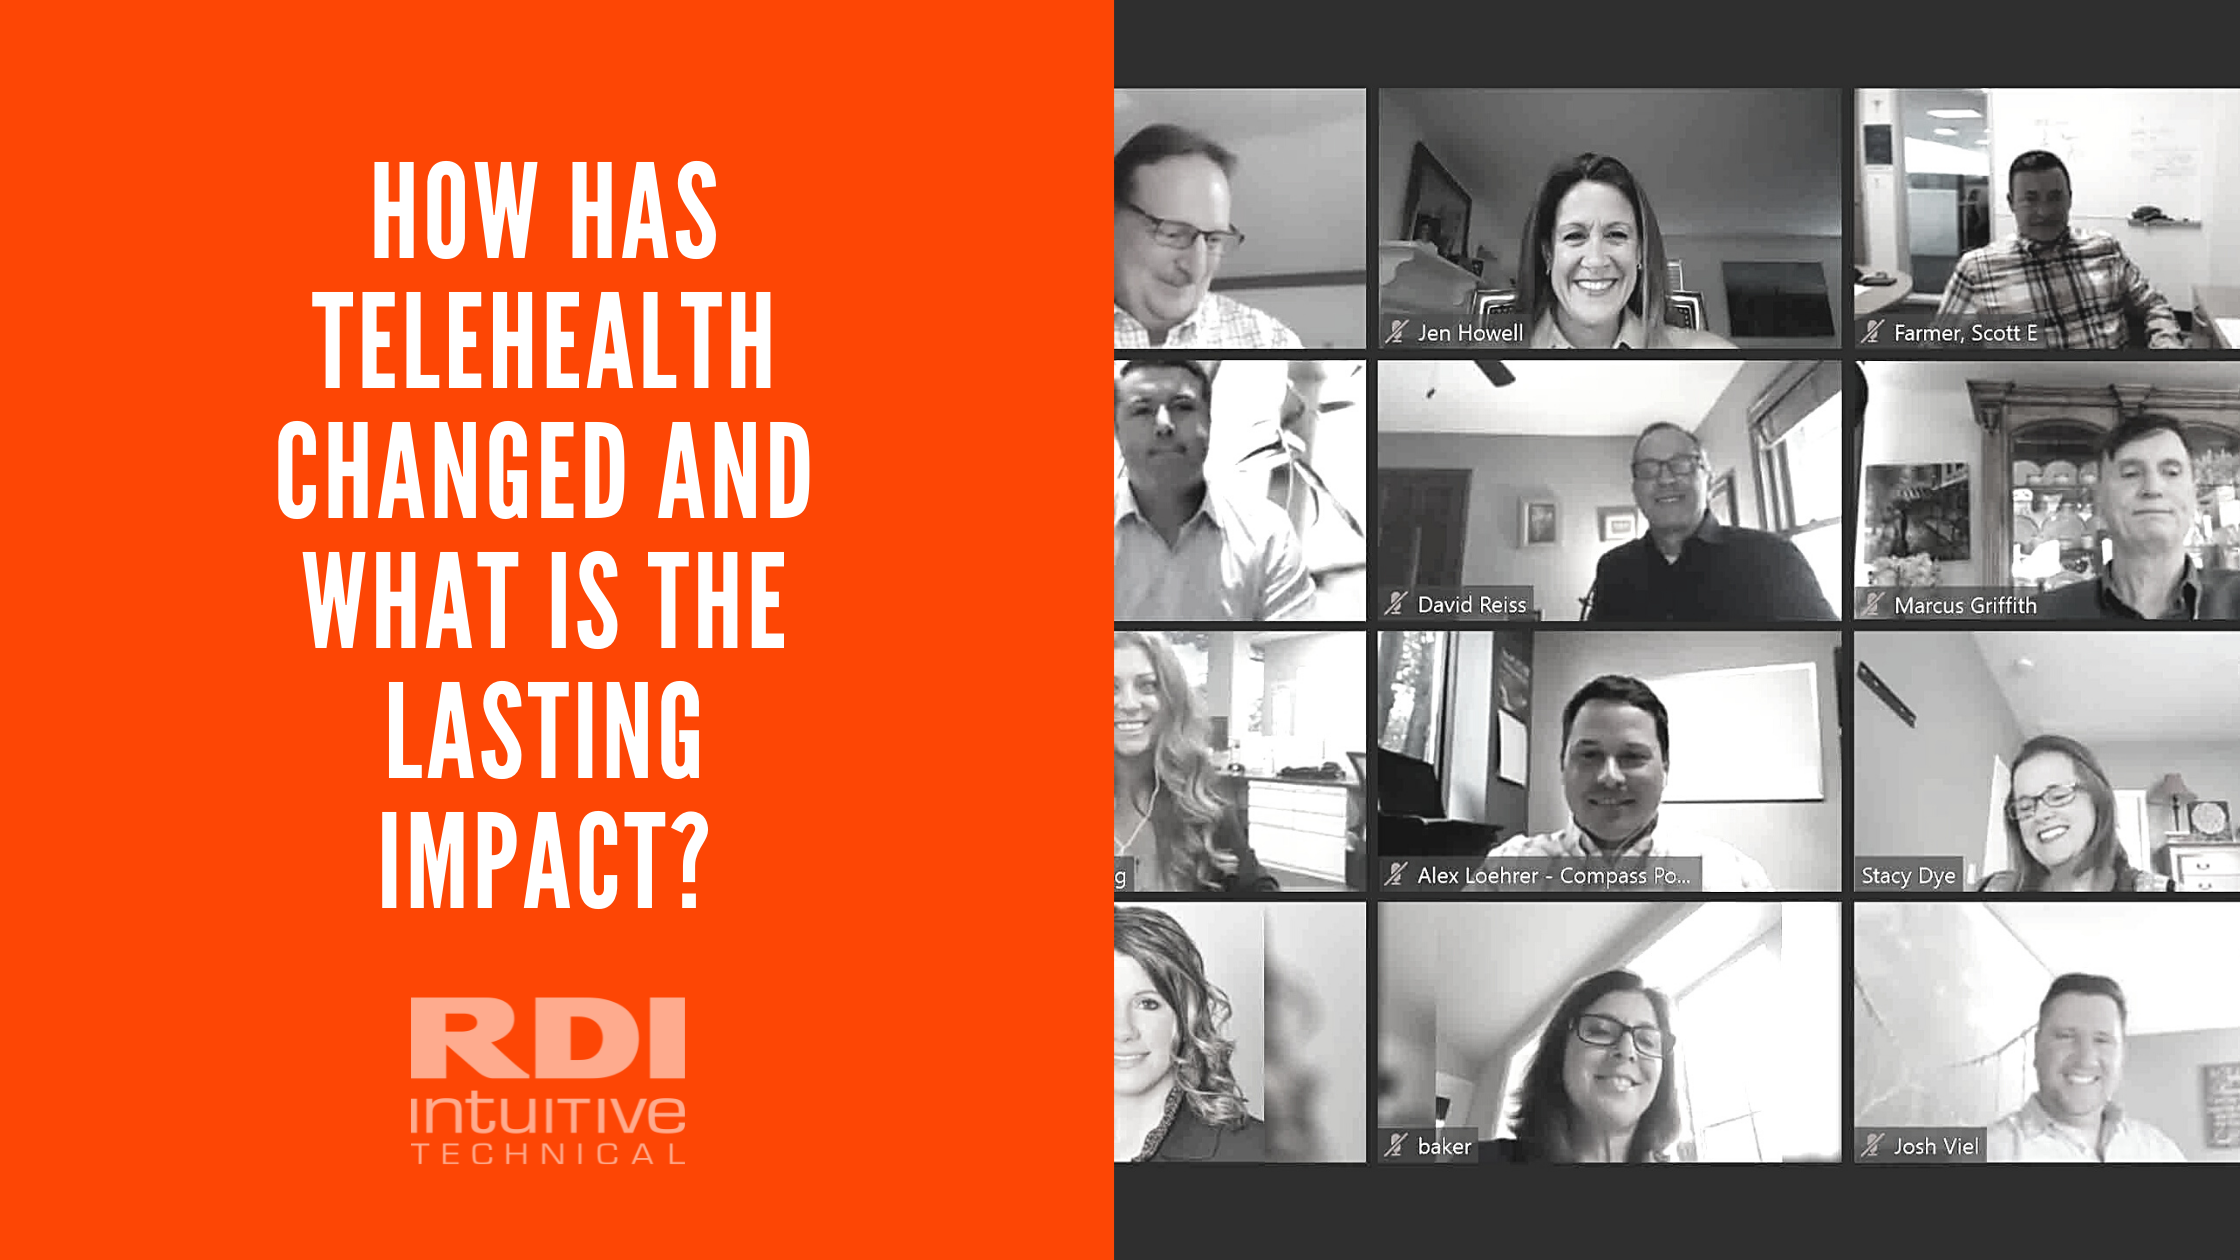 RDI Intuitive Technical blog - How Has Telehealth Changed and What is the Lasting Impact?